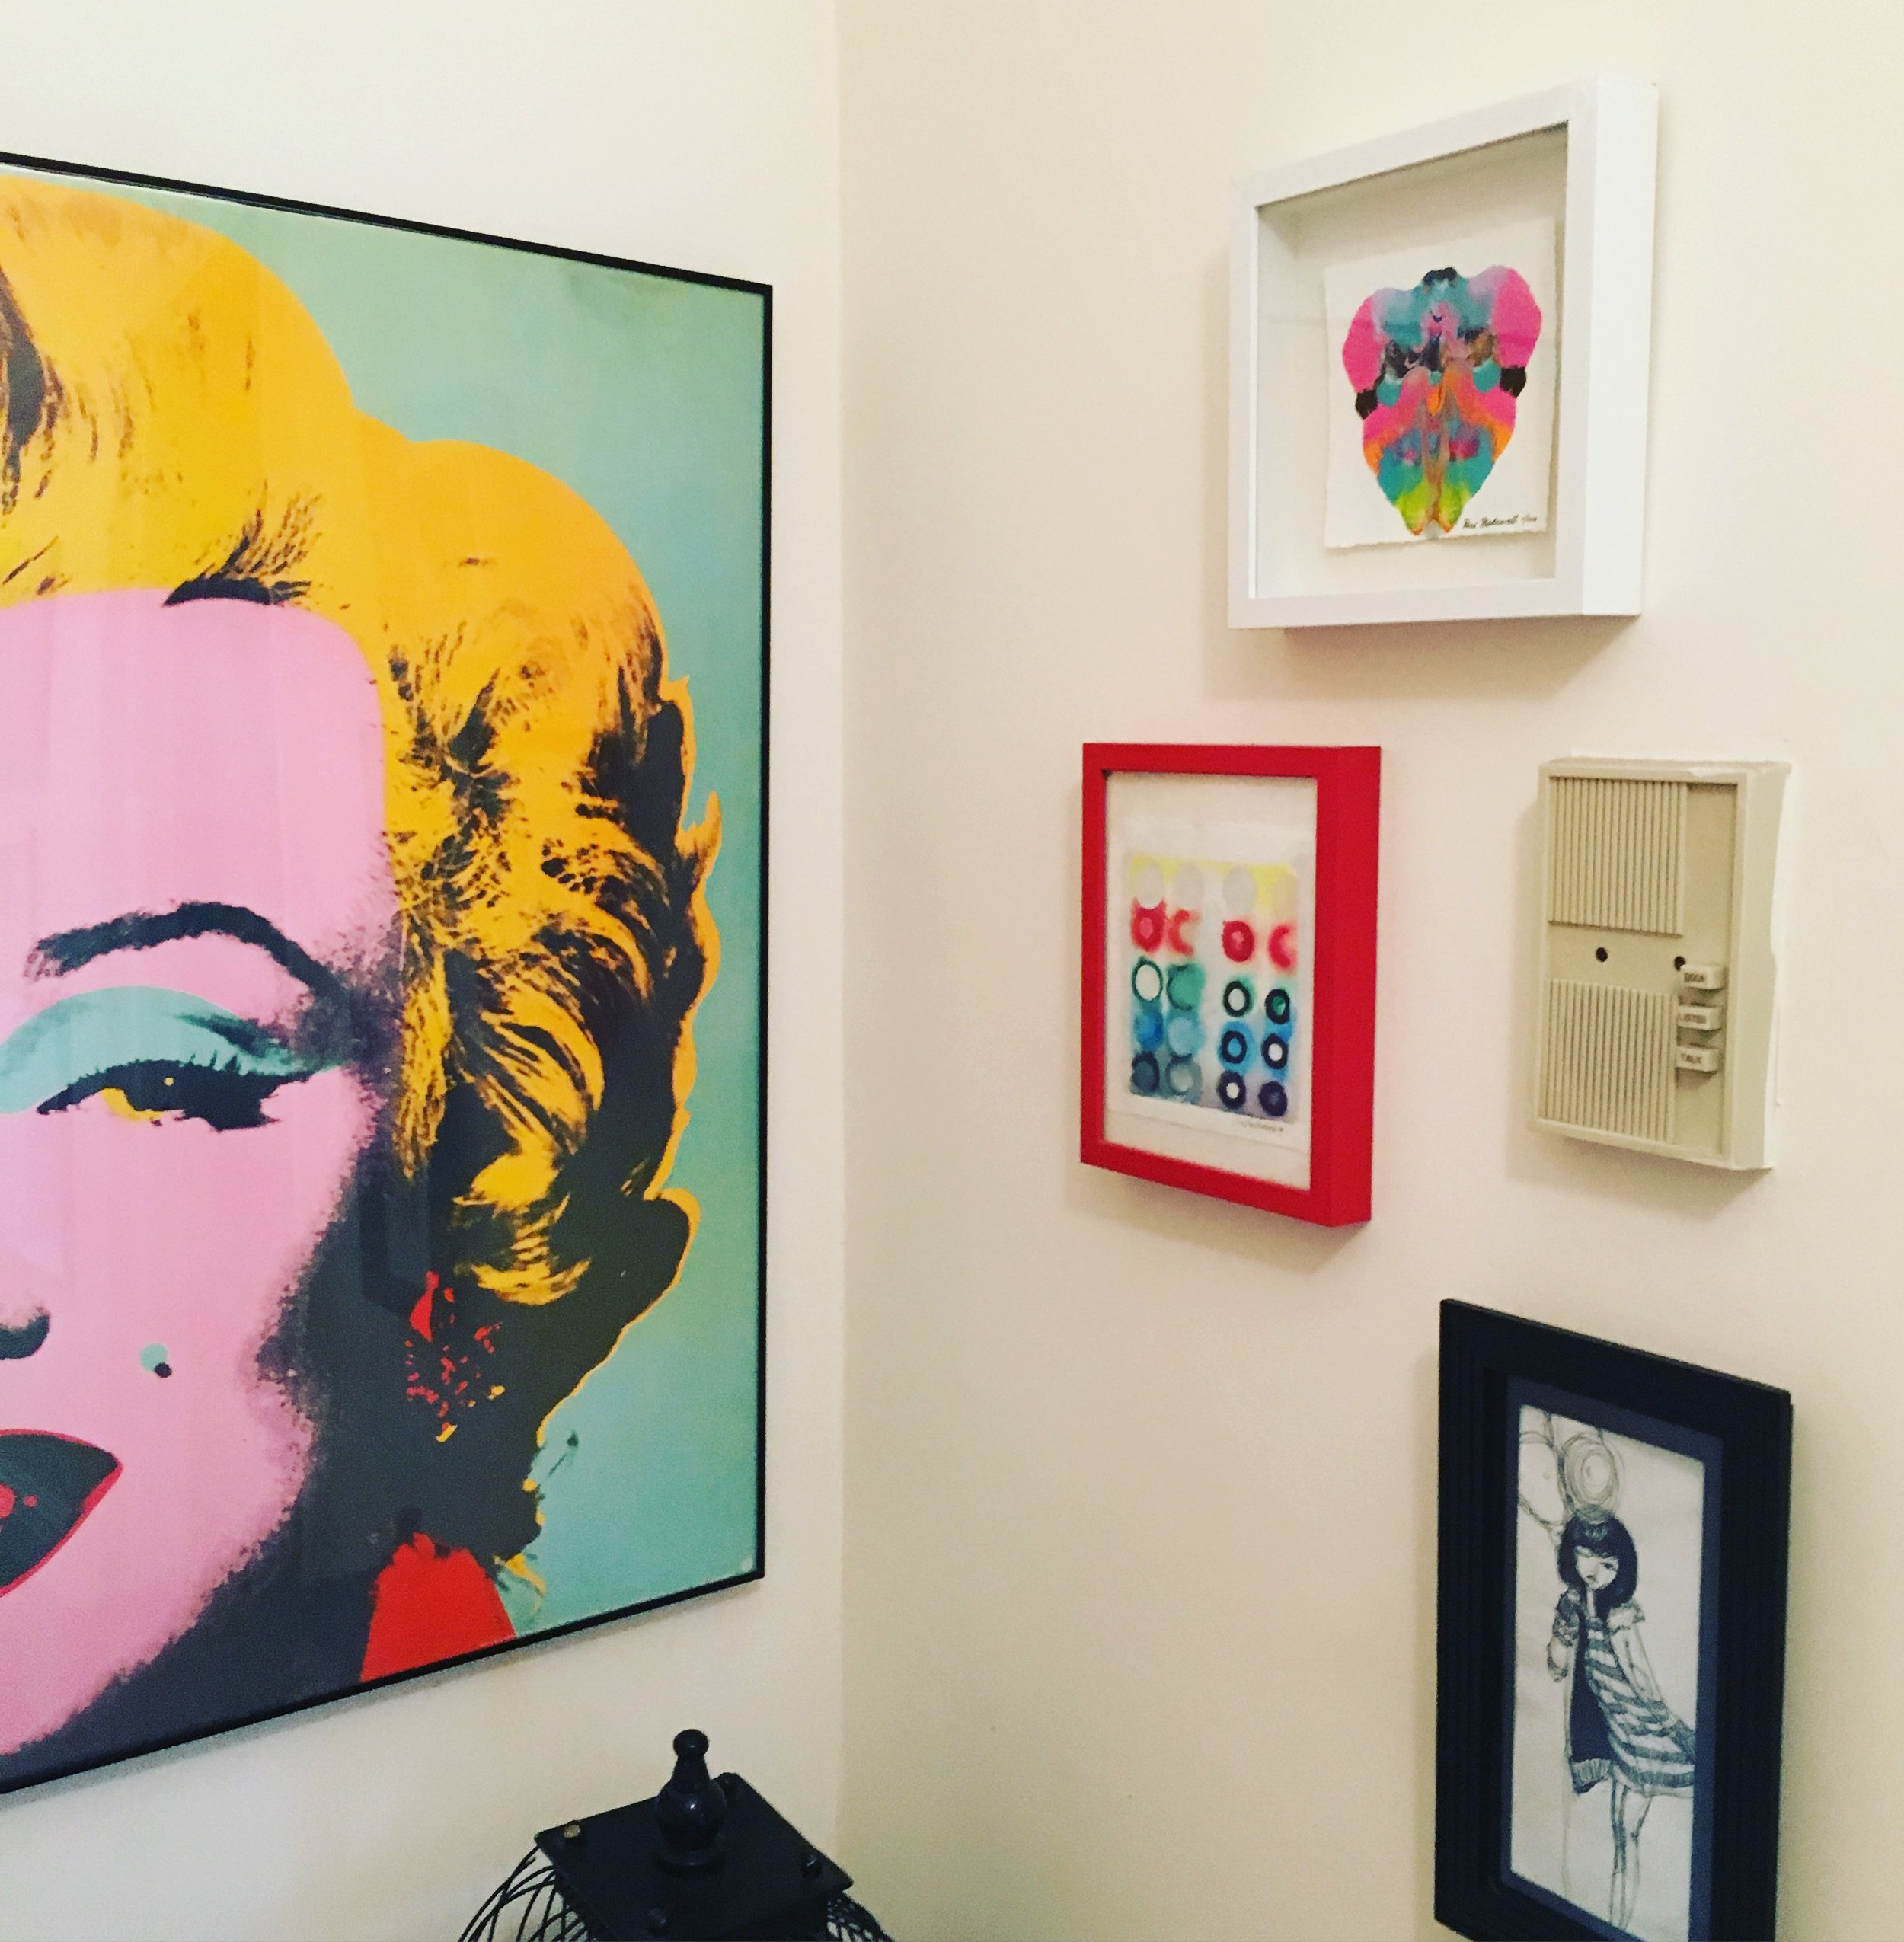 In Manhattan, a petite work of Max's is complimented by a classic Marilyn Monroe piece by Andy Warhol.